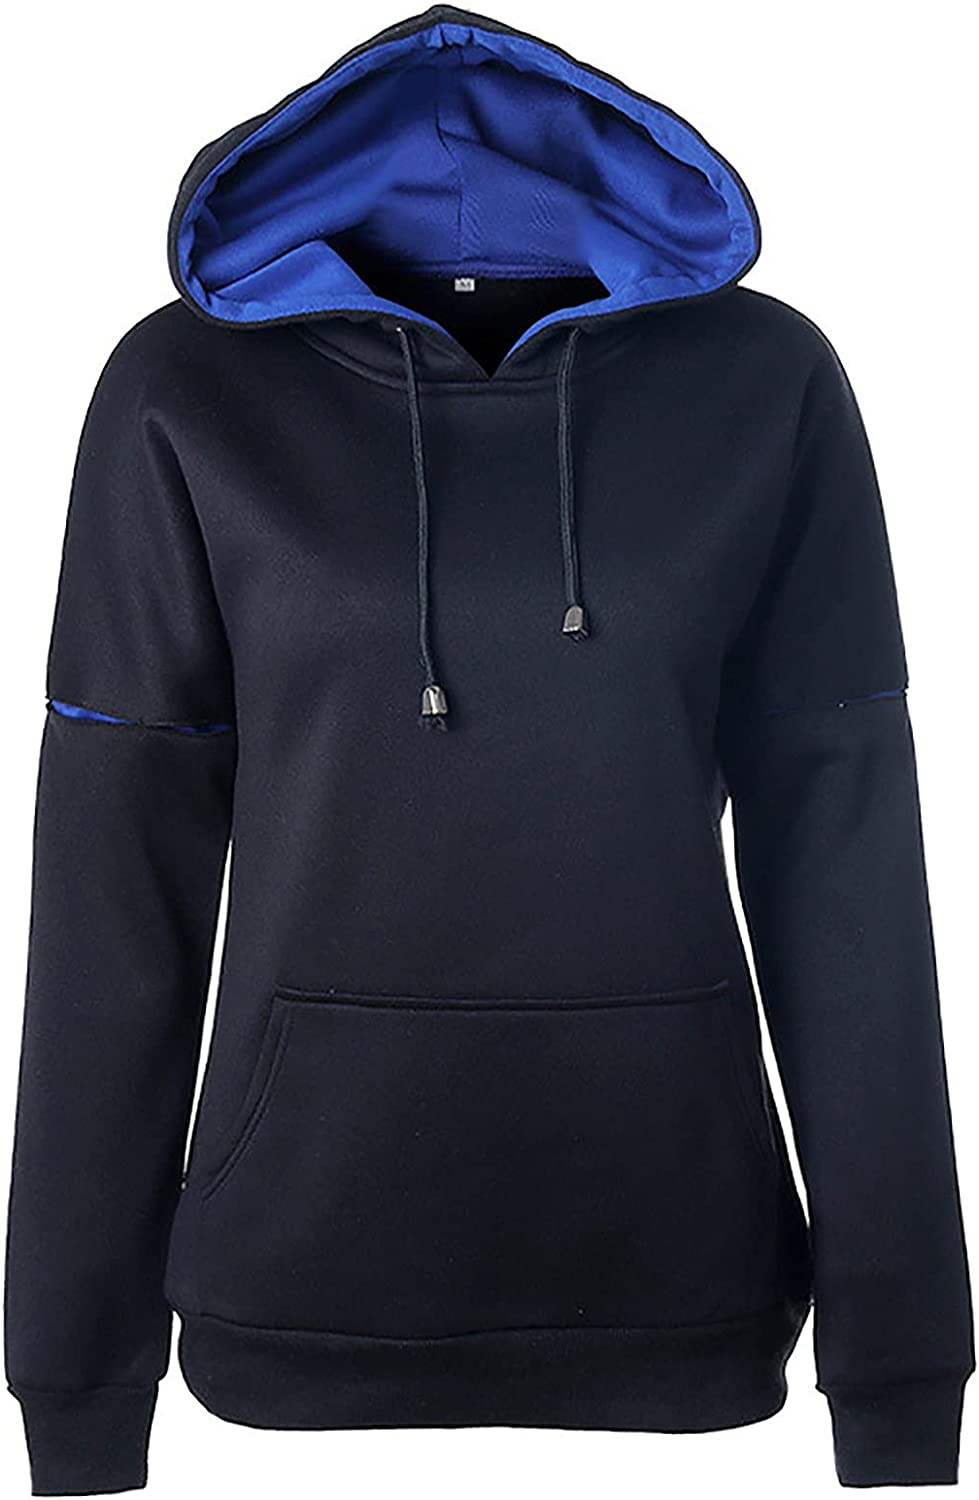 Solid Color Stitching Sleeve Drawstring Hoodies For Women Long Sleeve Sweatshirt Casual Pullover Tops With Pockets